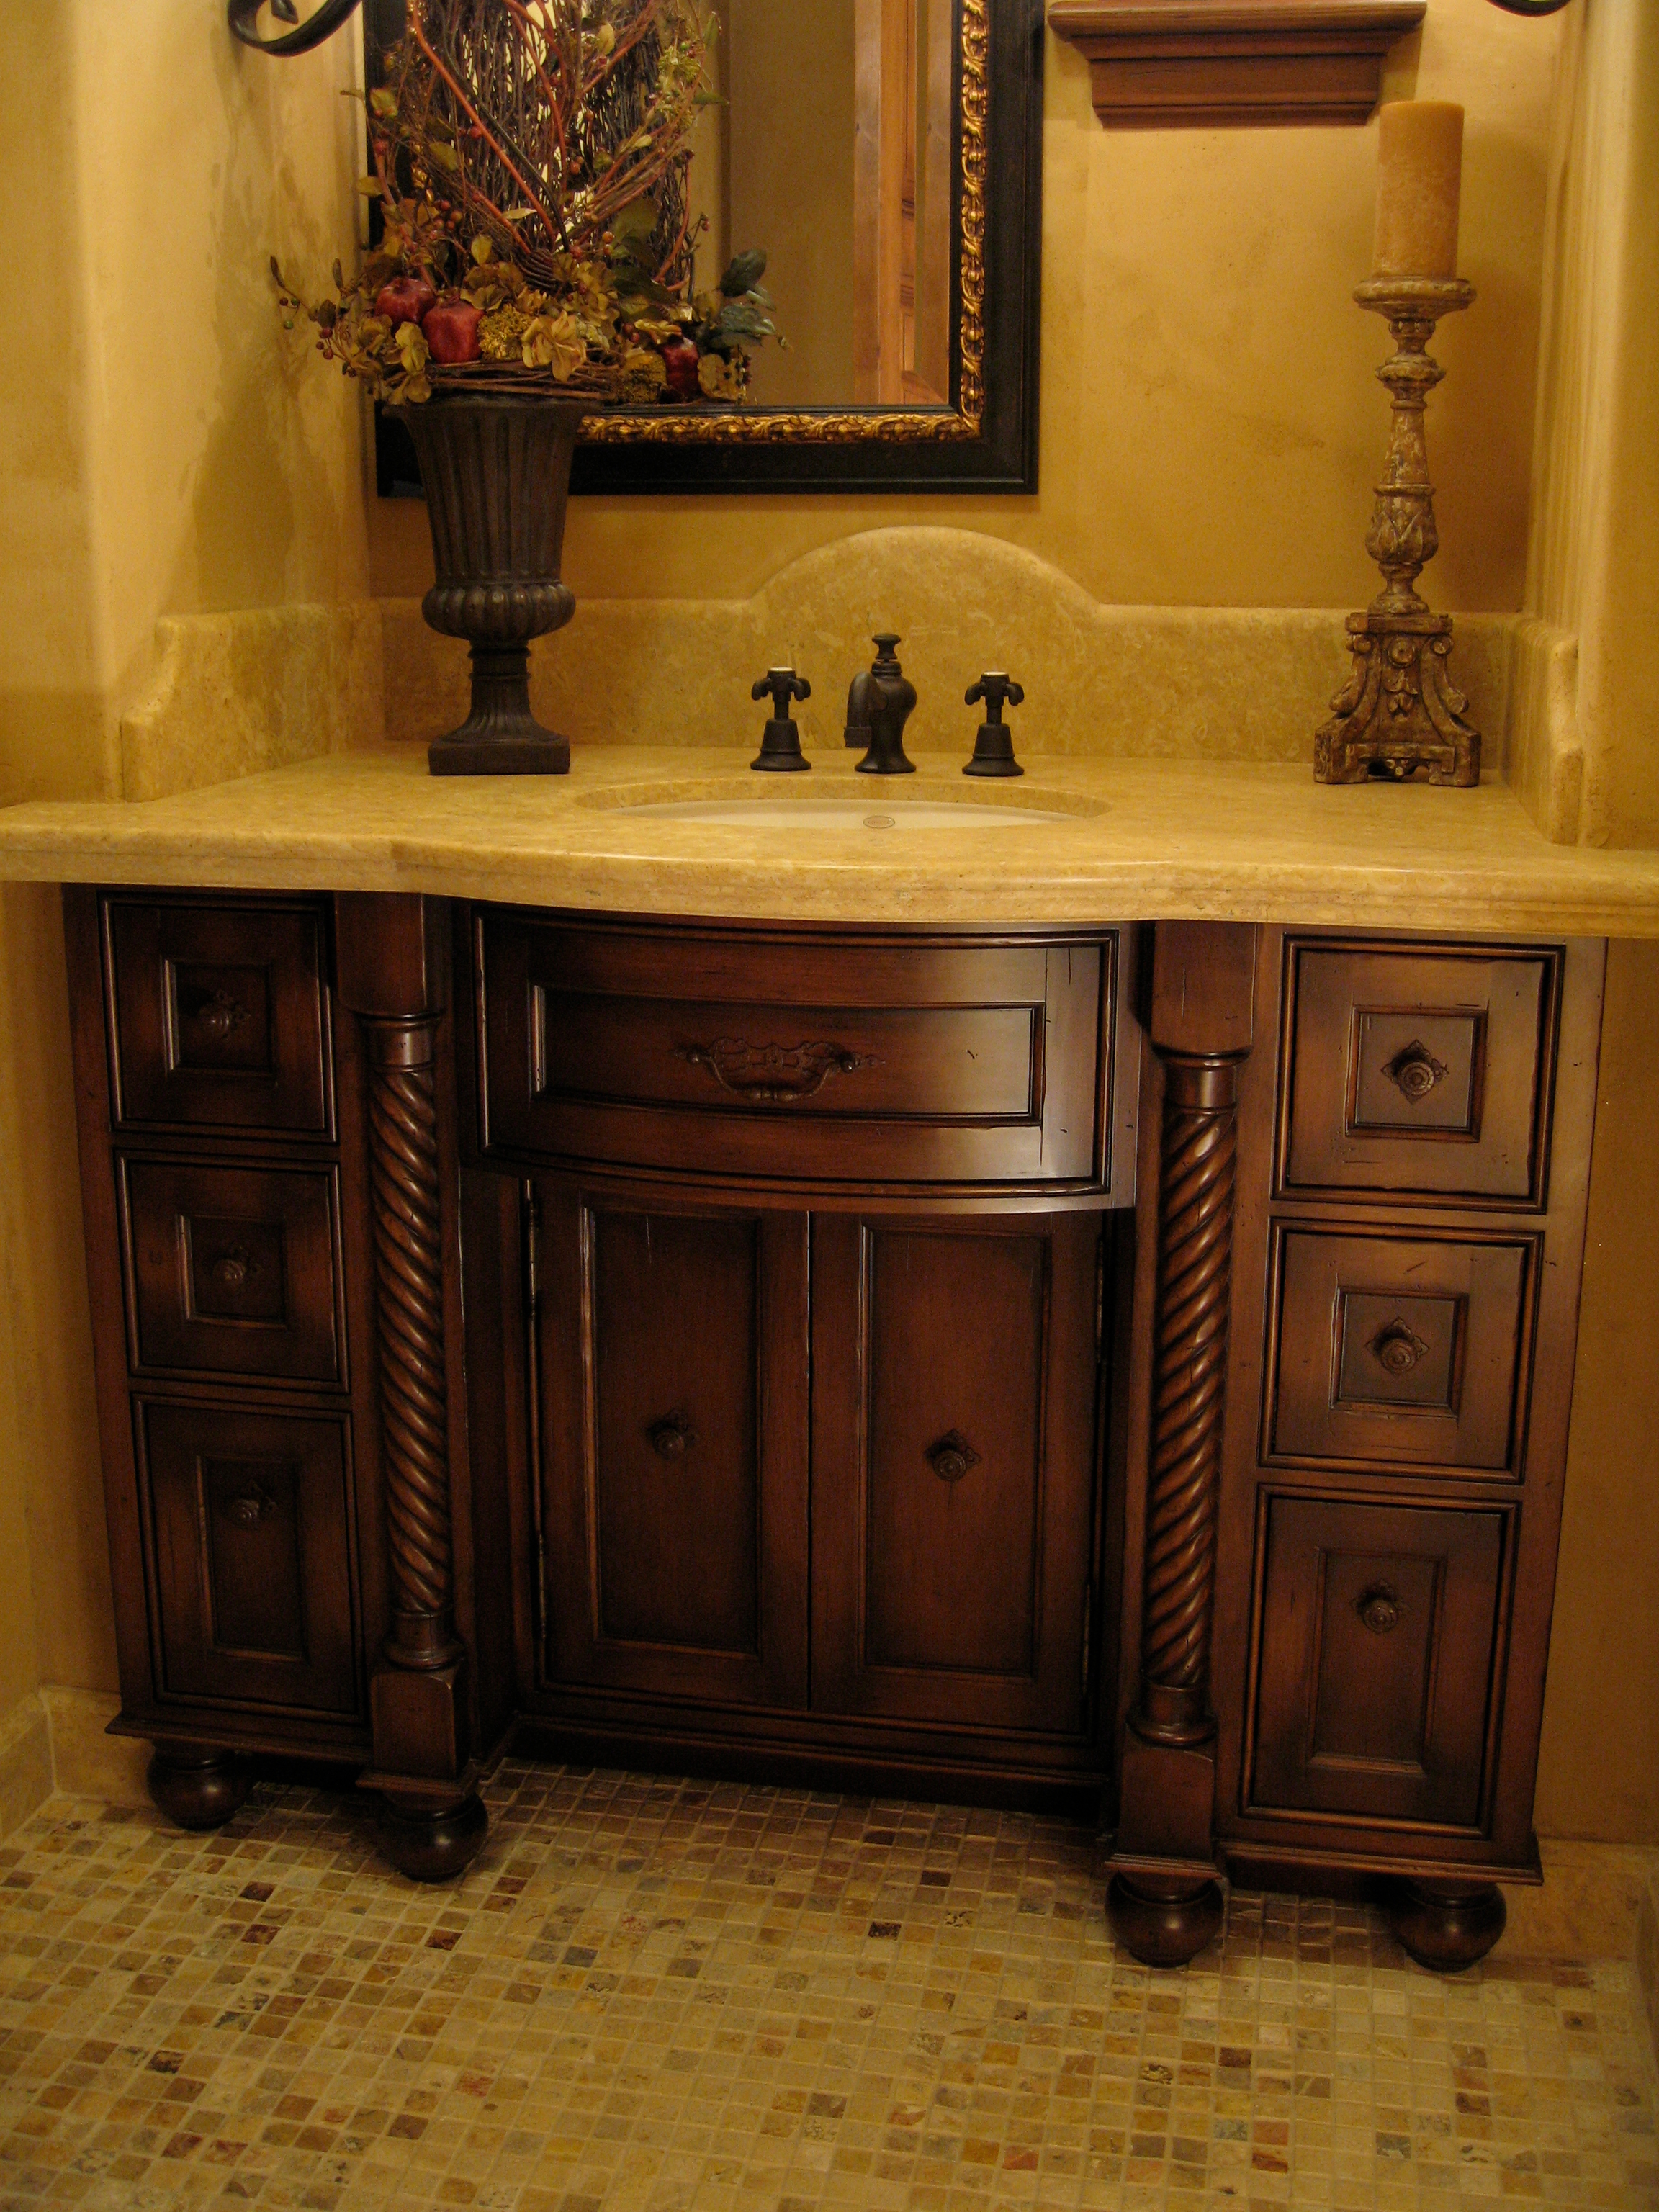 Bow front vanity in distressed Alder with rope twist columns, handcrafted and ultimately designed by Philip Snyder of PS Woodworking.